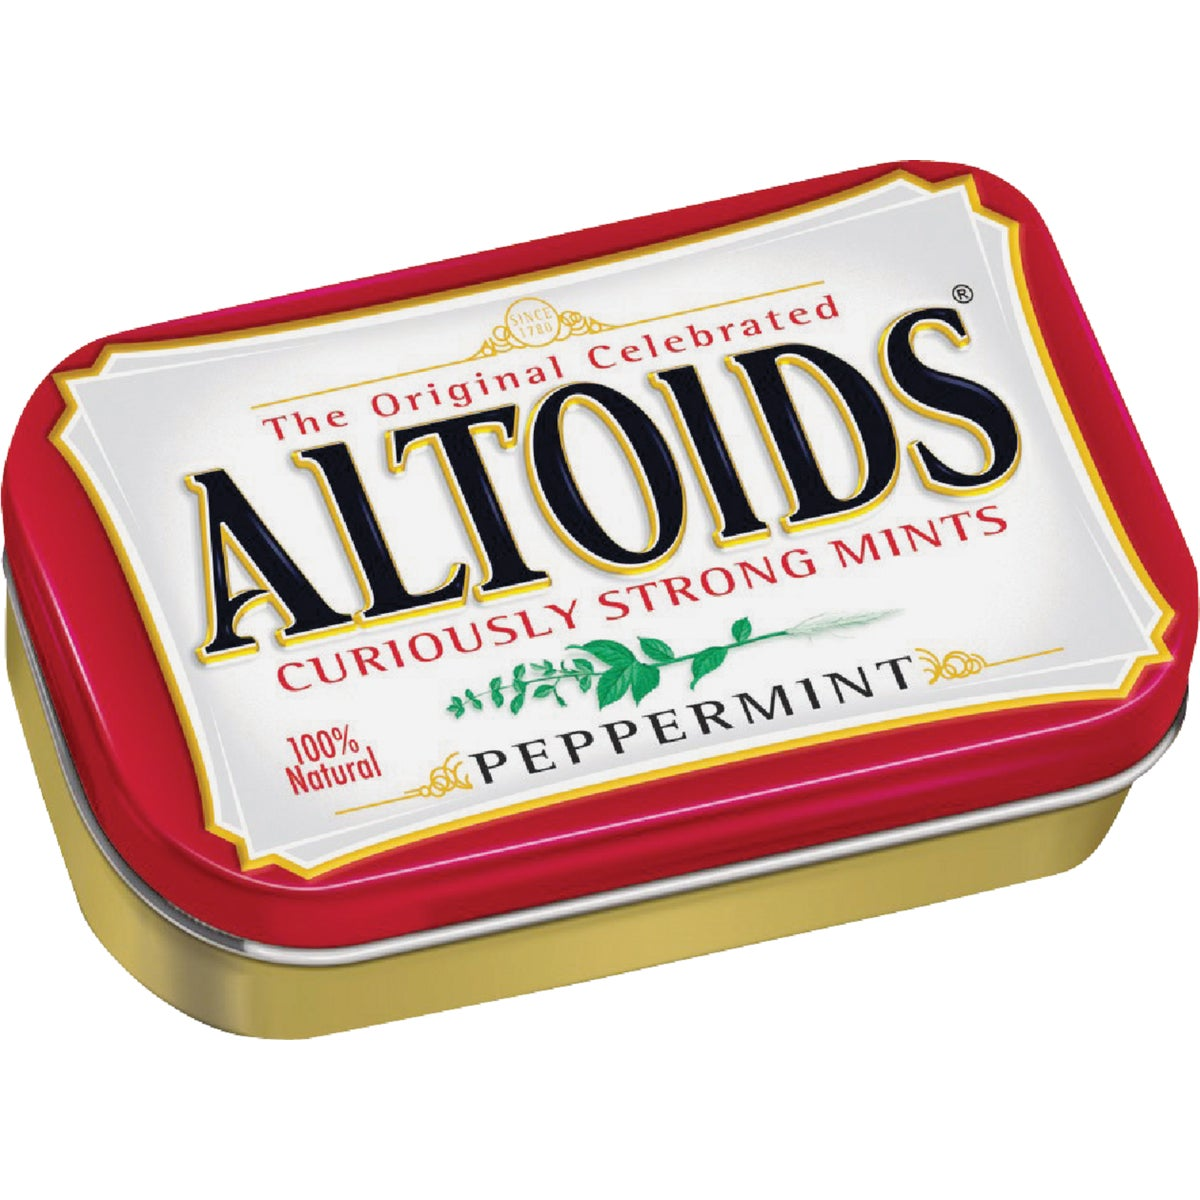 PEPPERMINT ALTOIDS